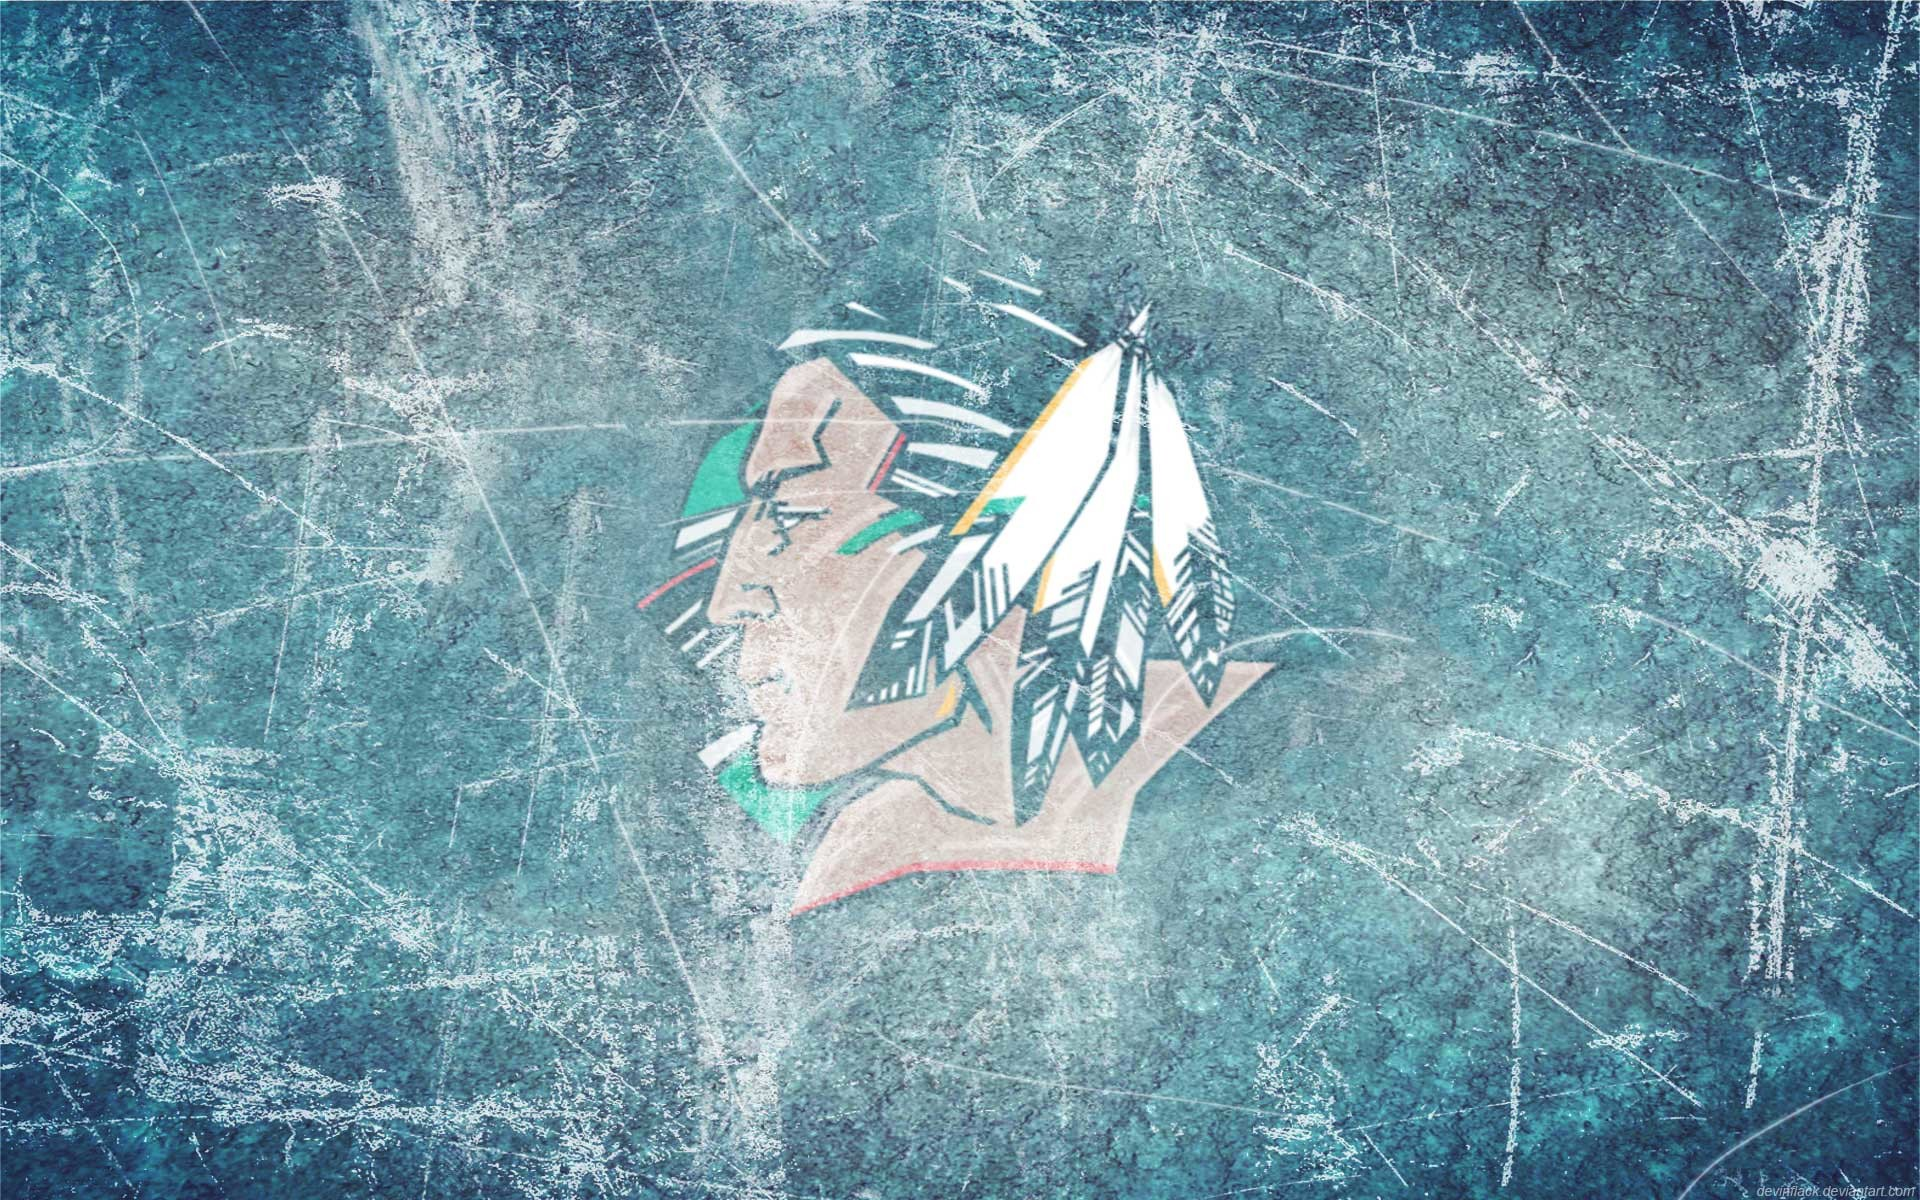 1920x1200 Fighting Sioux Black Ice wallpaper